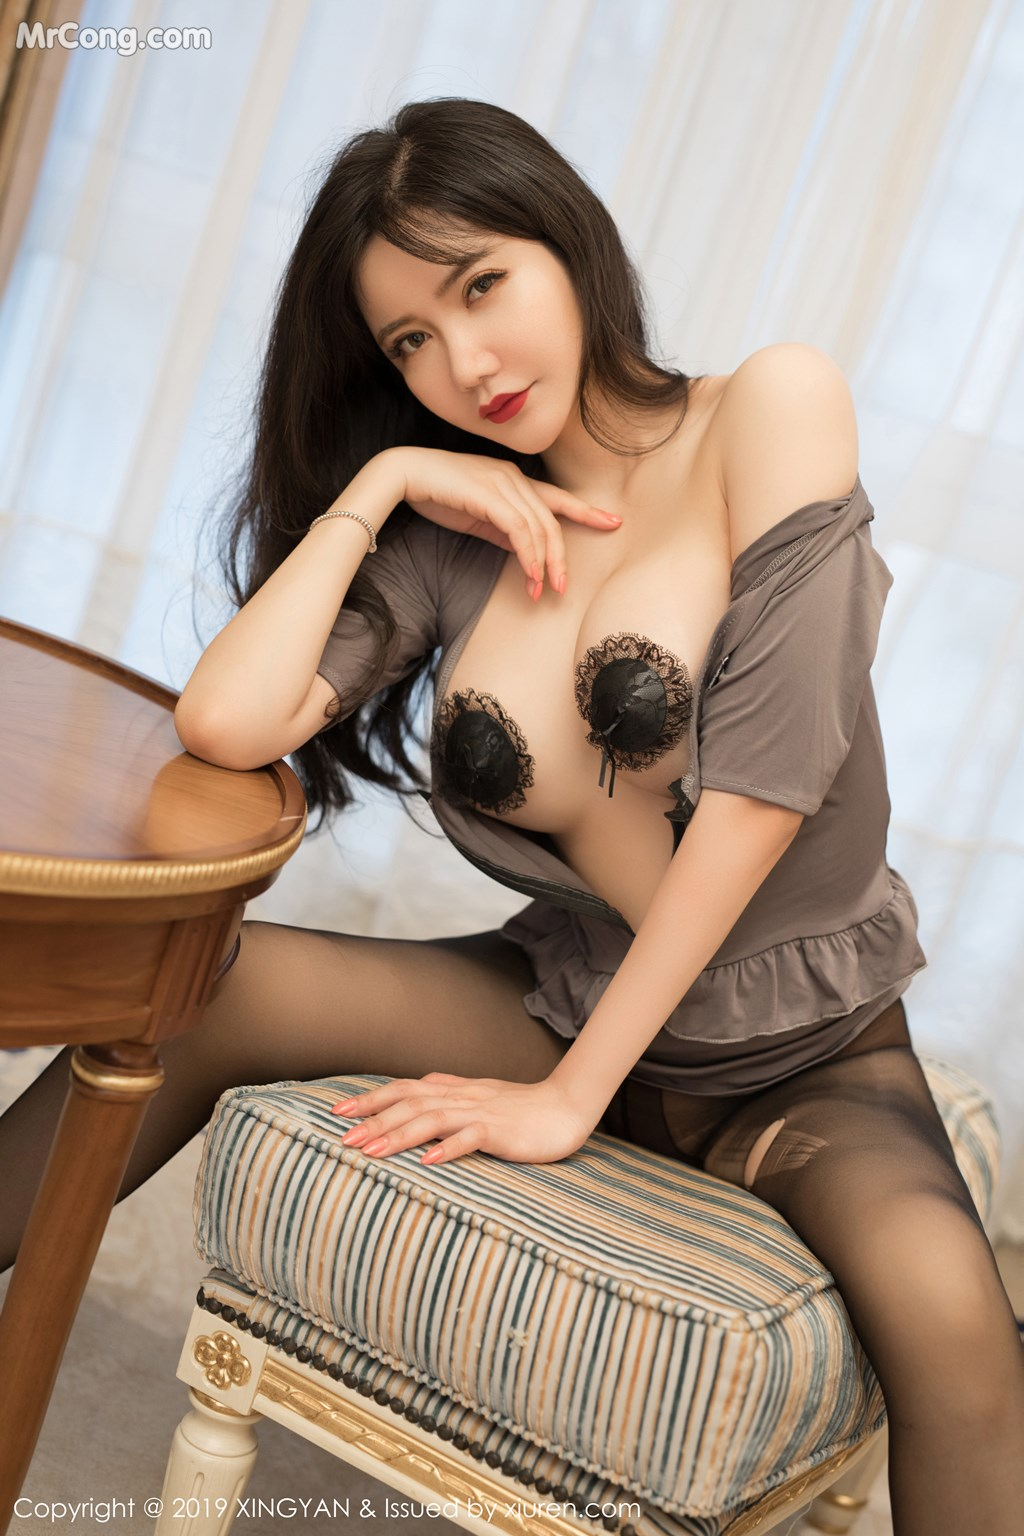 Image XingYan-Vol.123-MrCong.com-022 in post XingYan Vol.123: 心妍小公主 (47 ảnh)